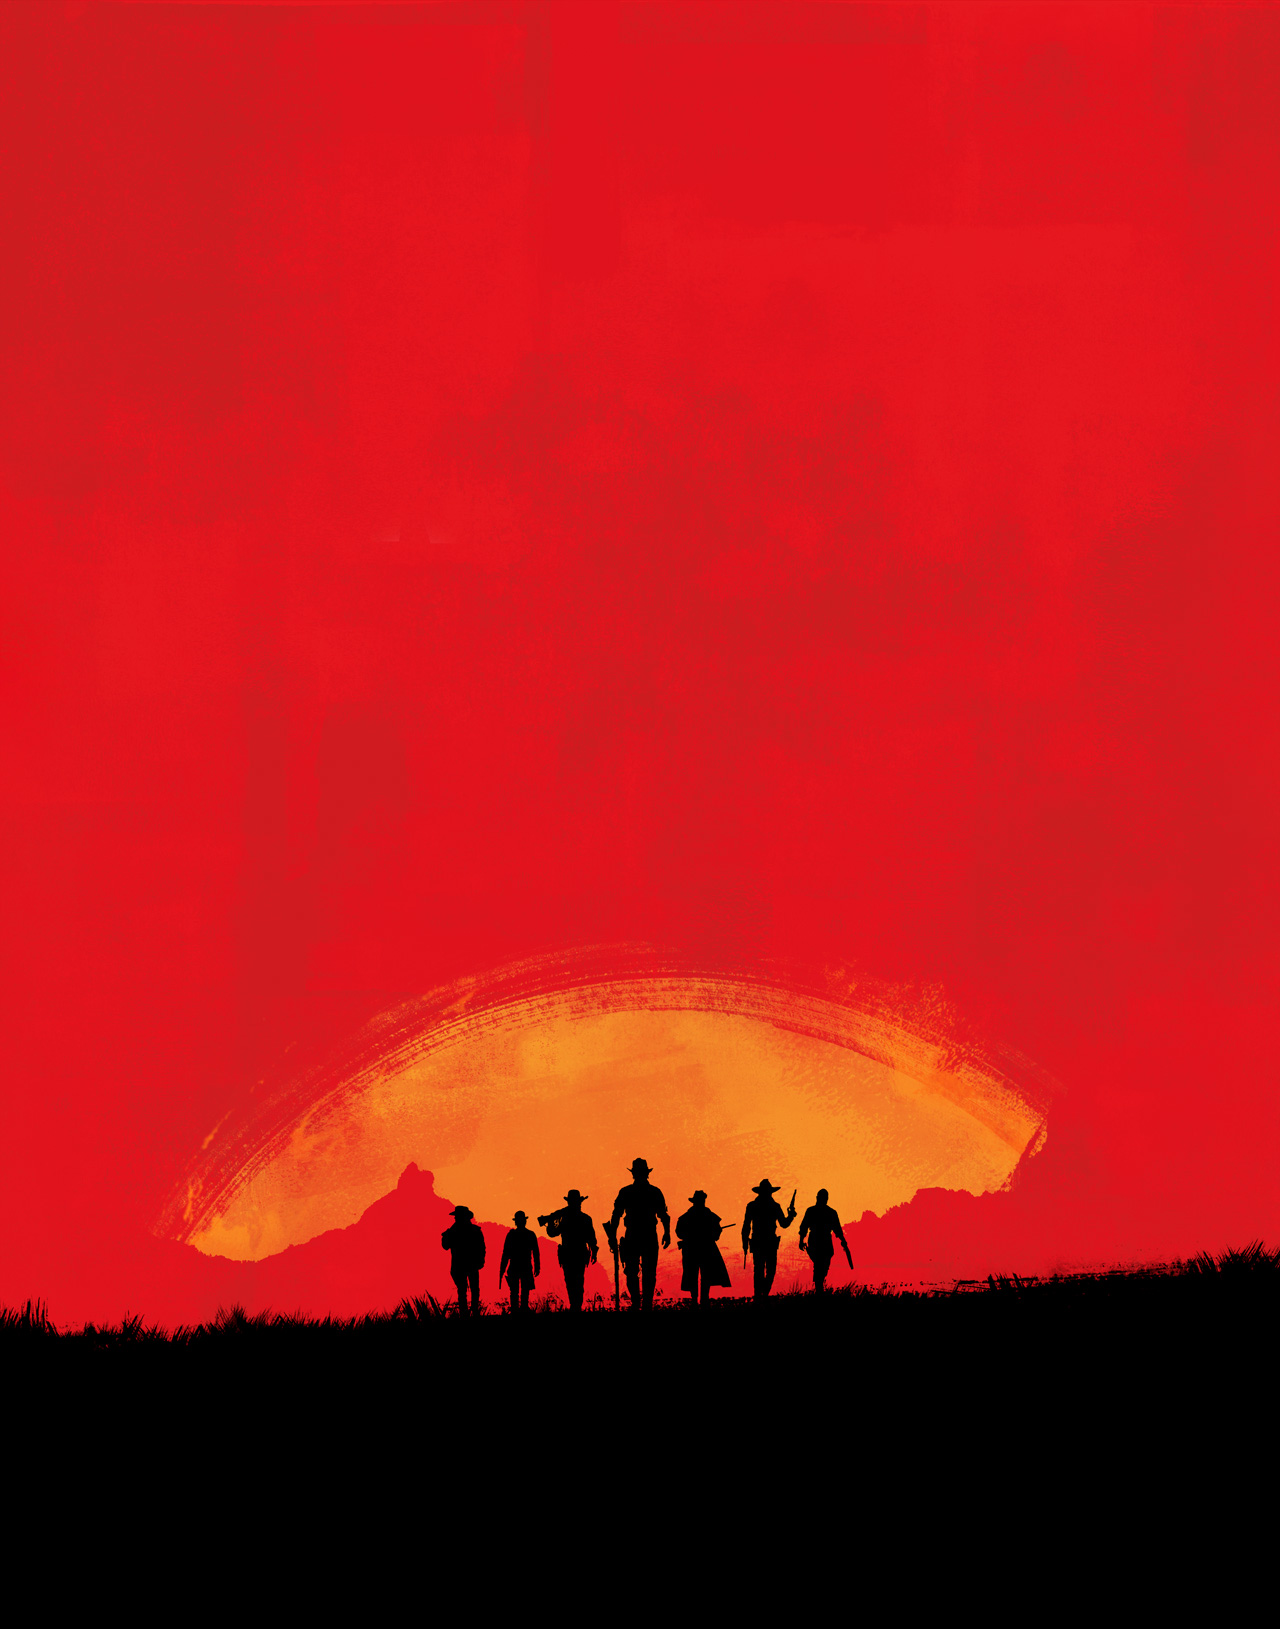 Rockstar Games teases sequel for Red Dead Redemption